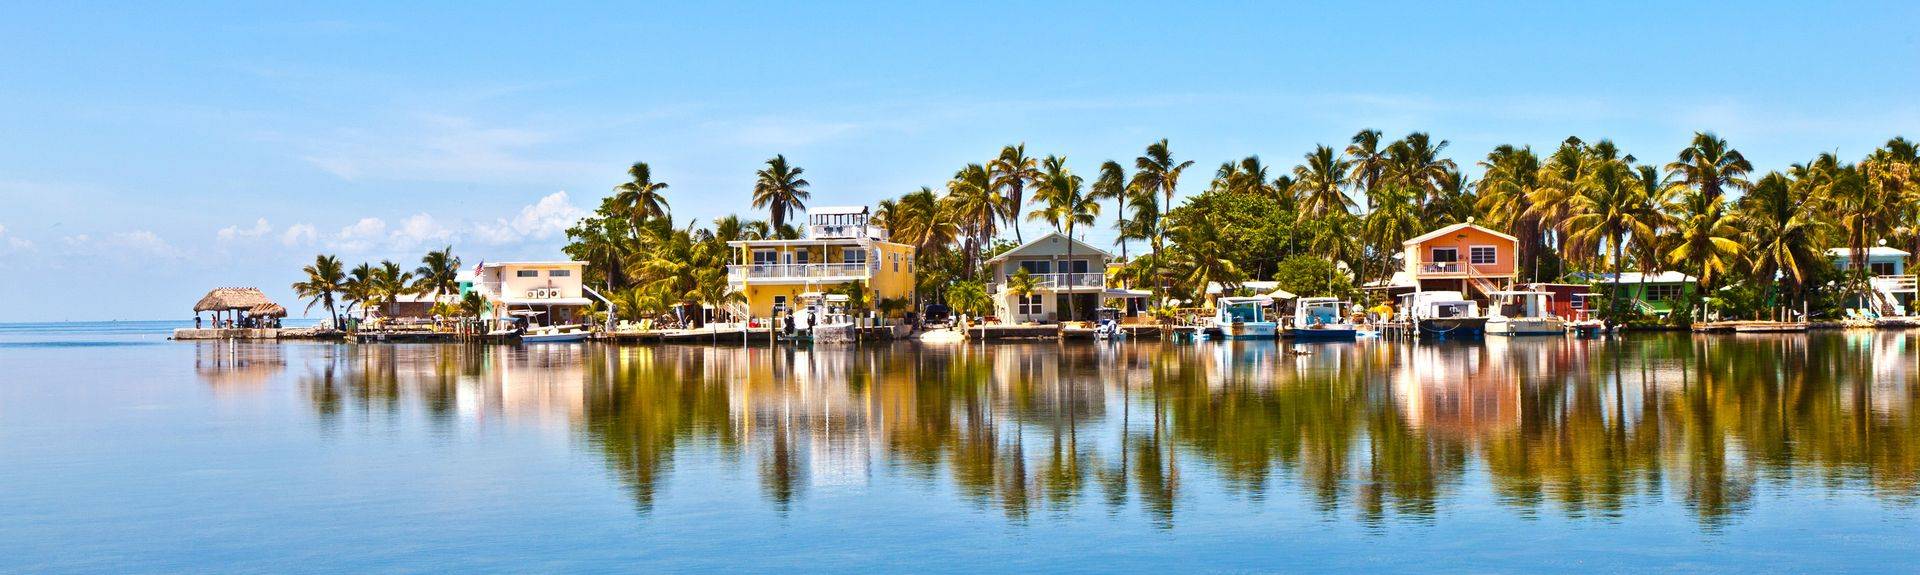 Florida Us Vacation Rentals Houses More Homeaway